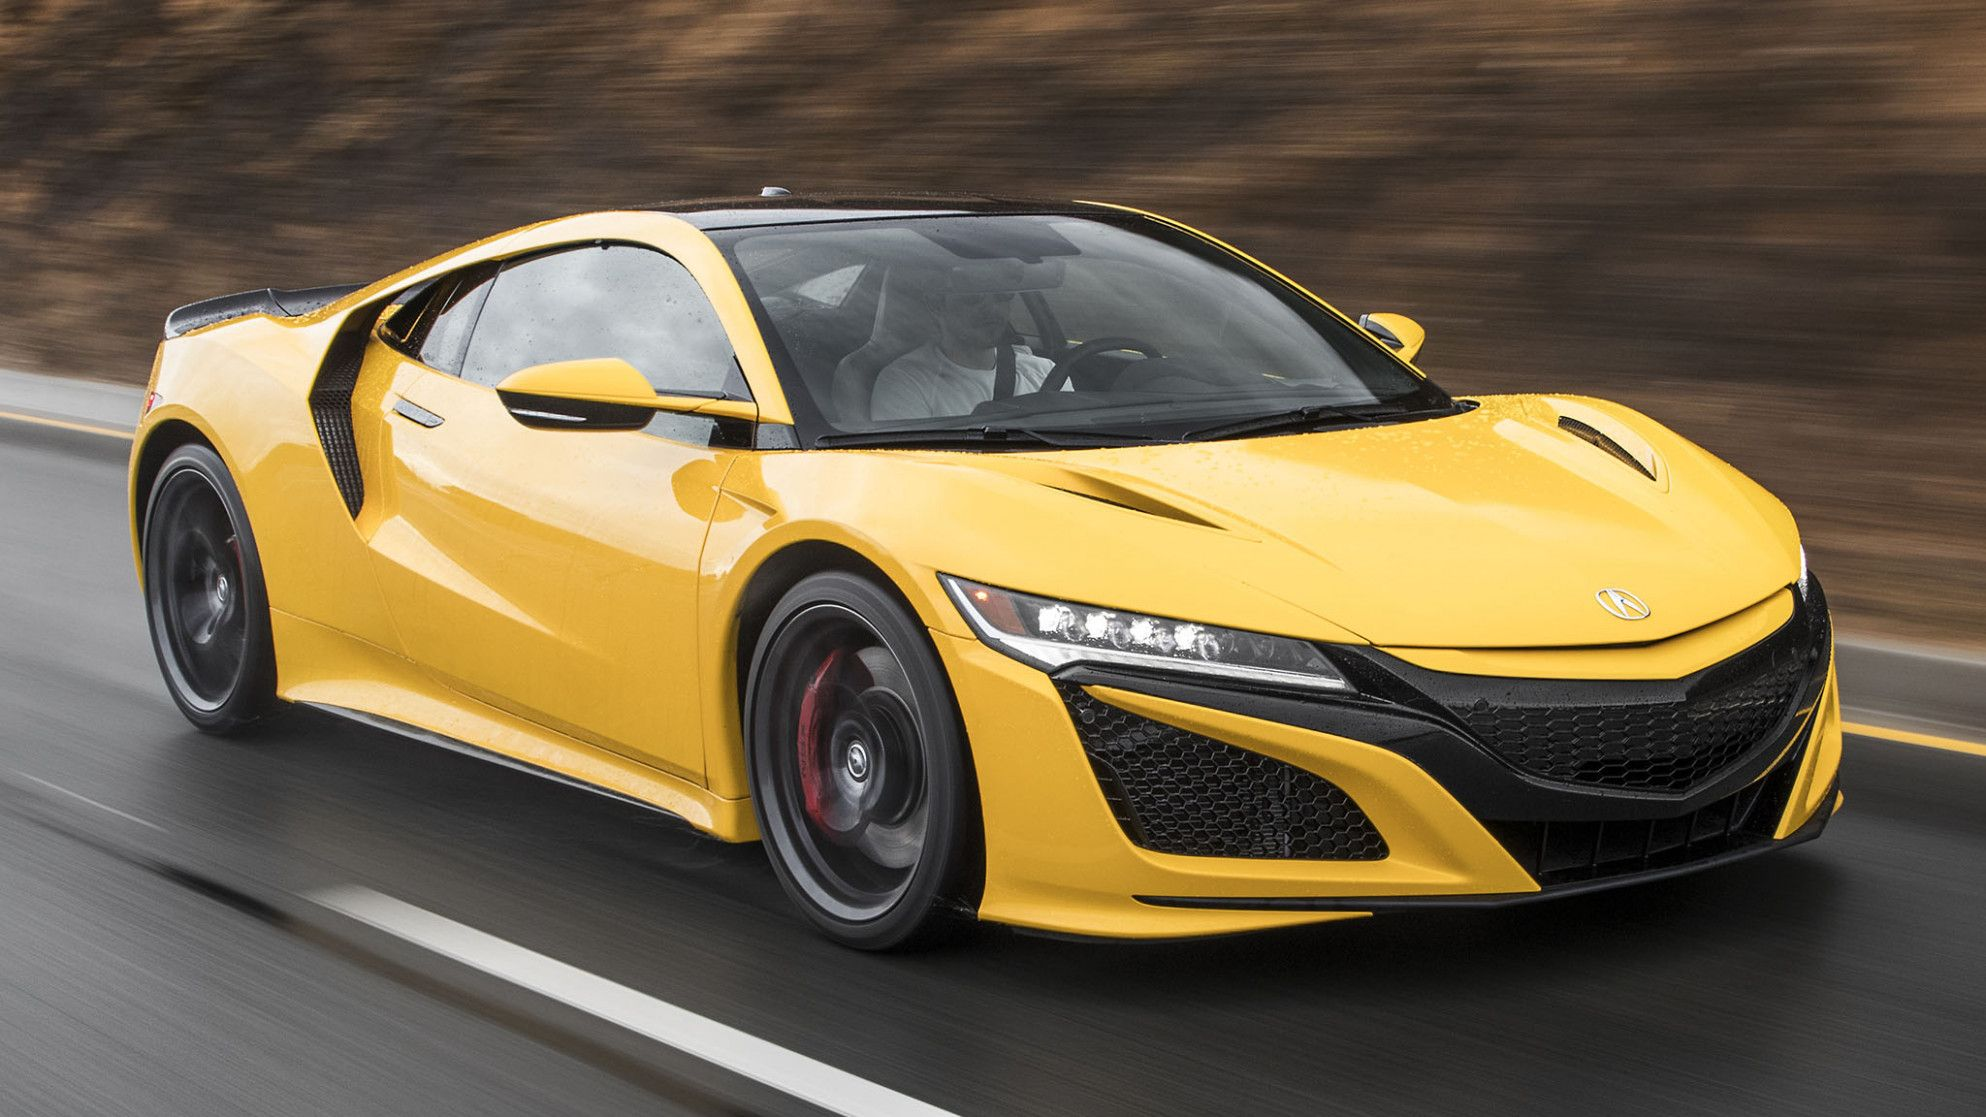 2020 Acura Nsx Top Speed In 2020 Nsx Acura Coupe Acura Nsx